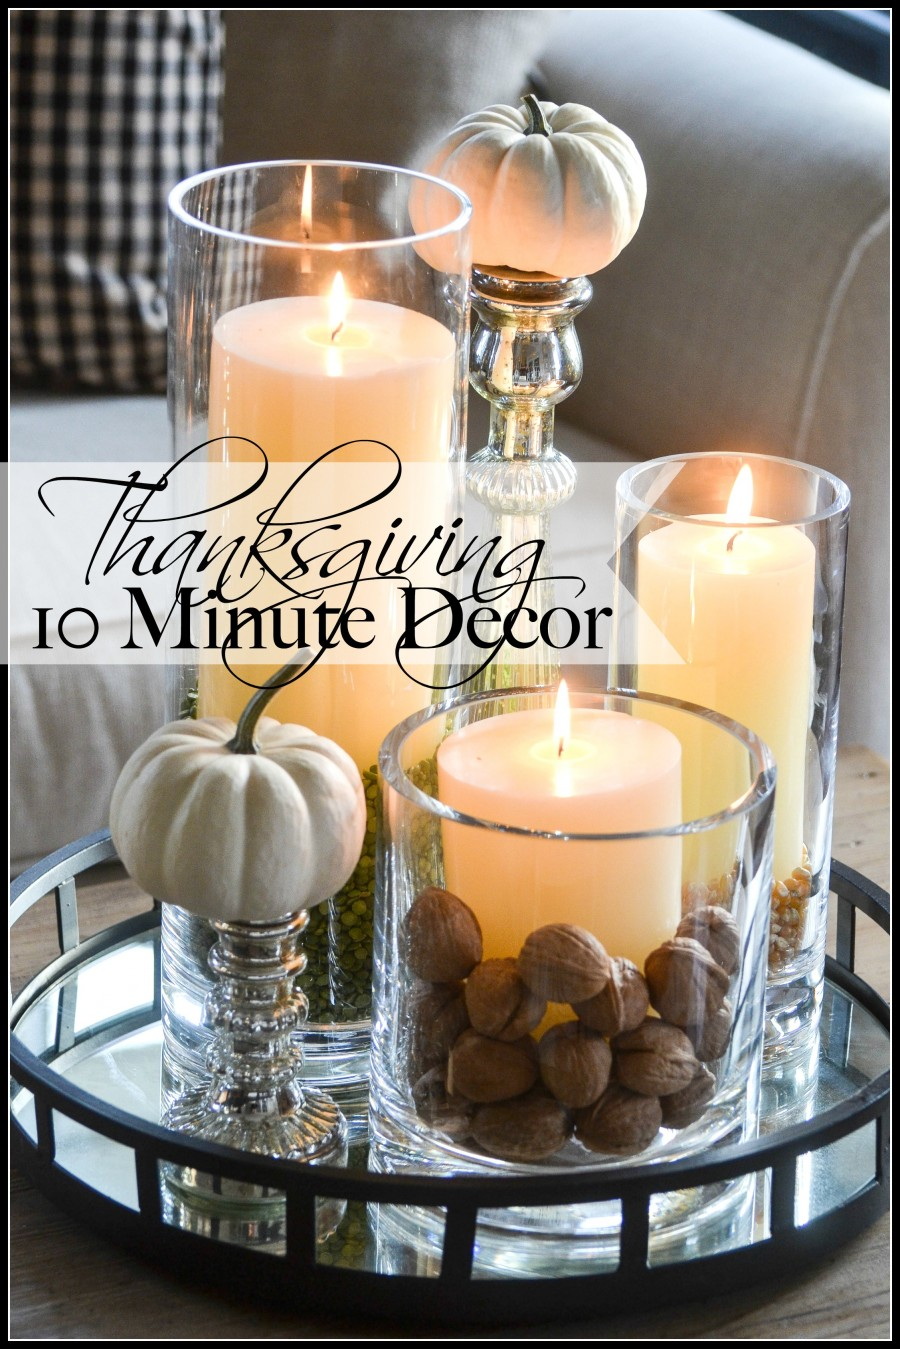 THANKSGIVING 10 MINUTE DECORATING